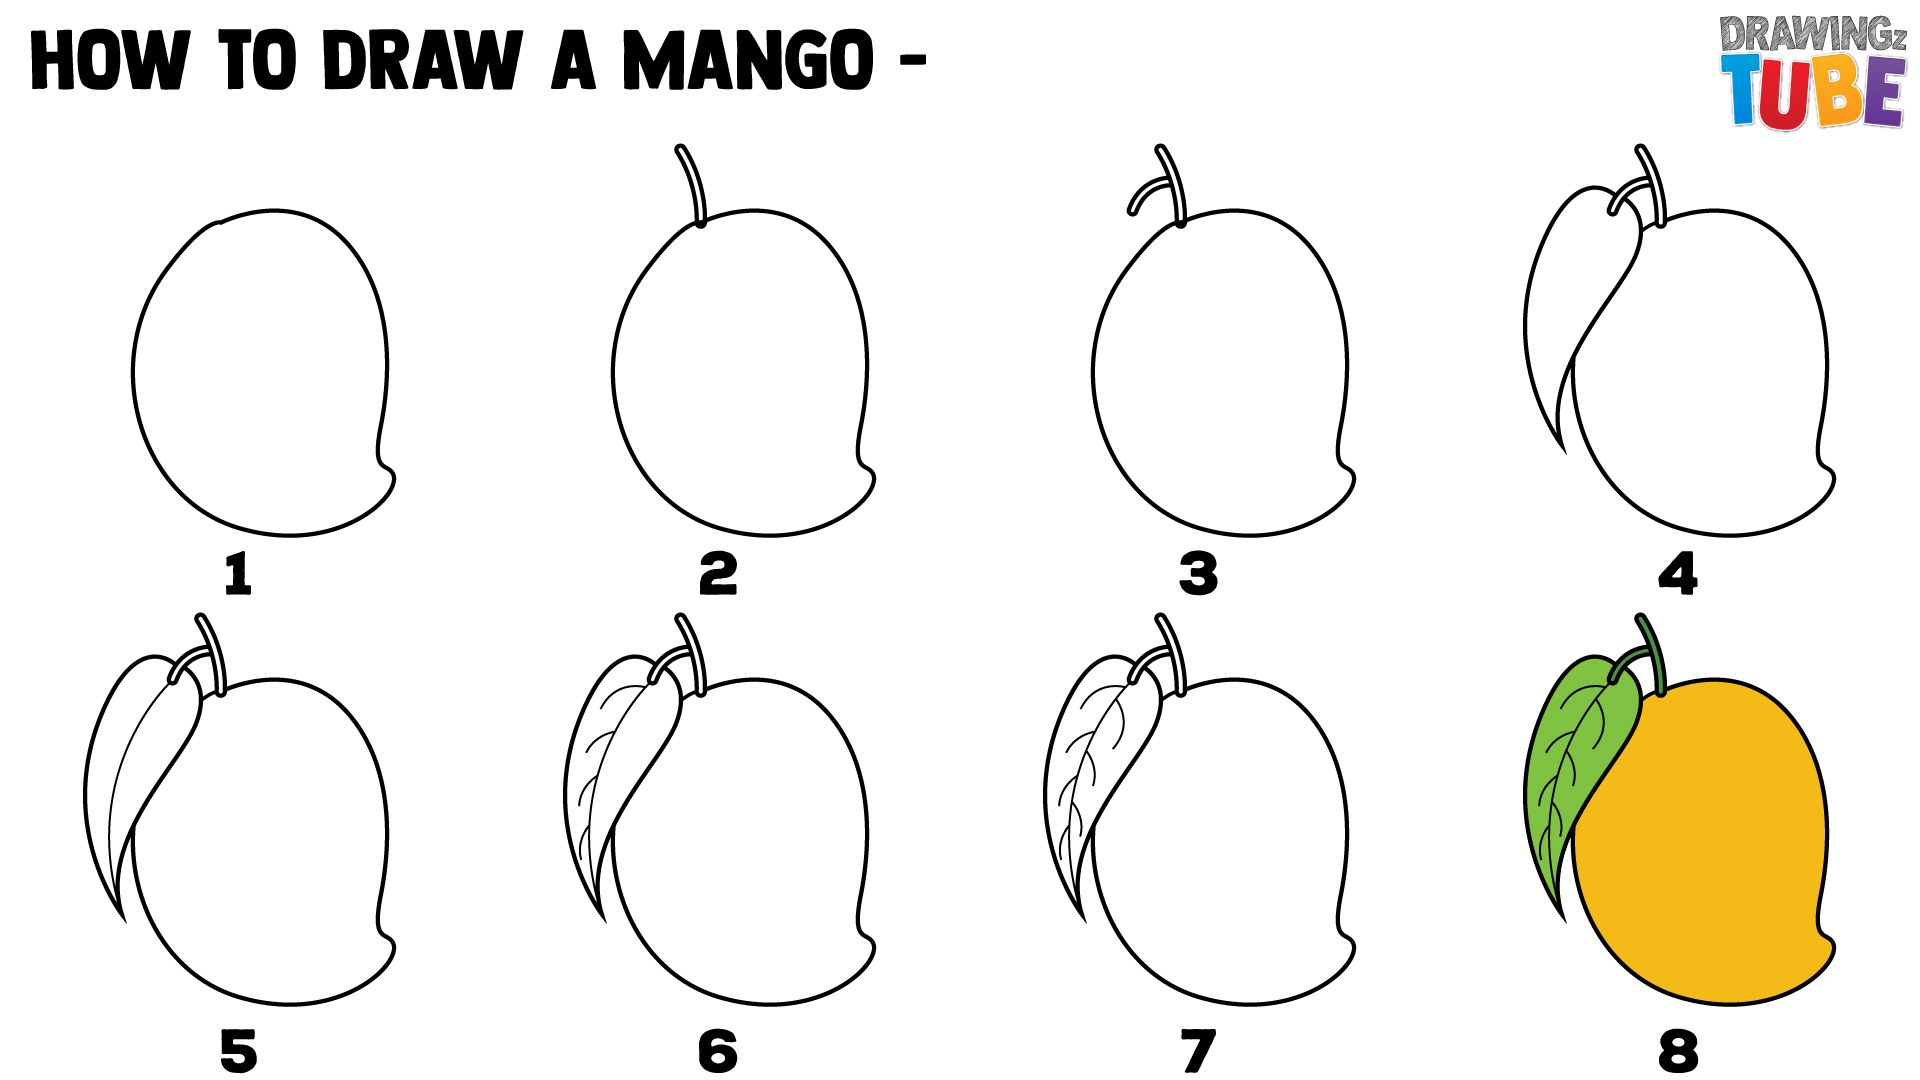 How To Draw A Mango For Kids Step By Step Drawing For Kids In 2019